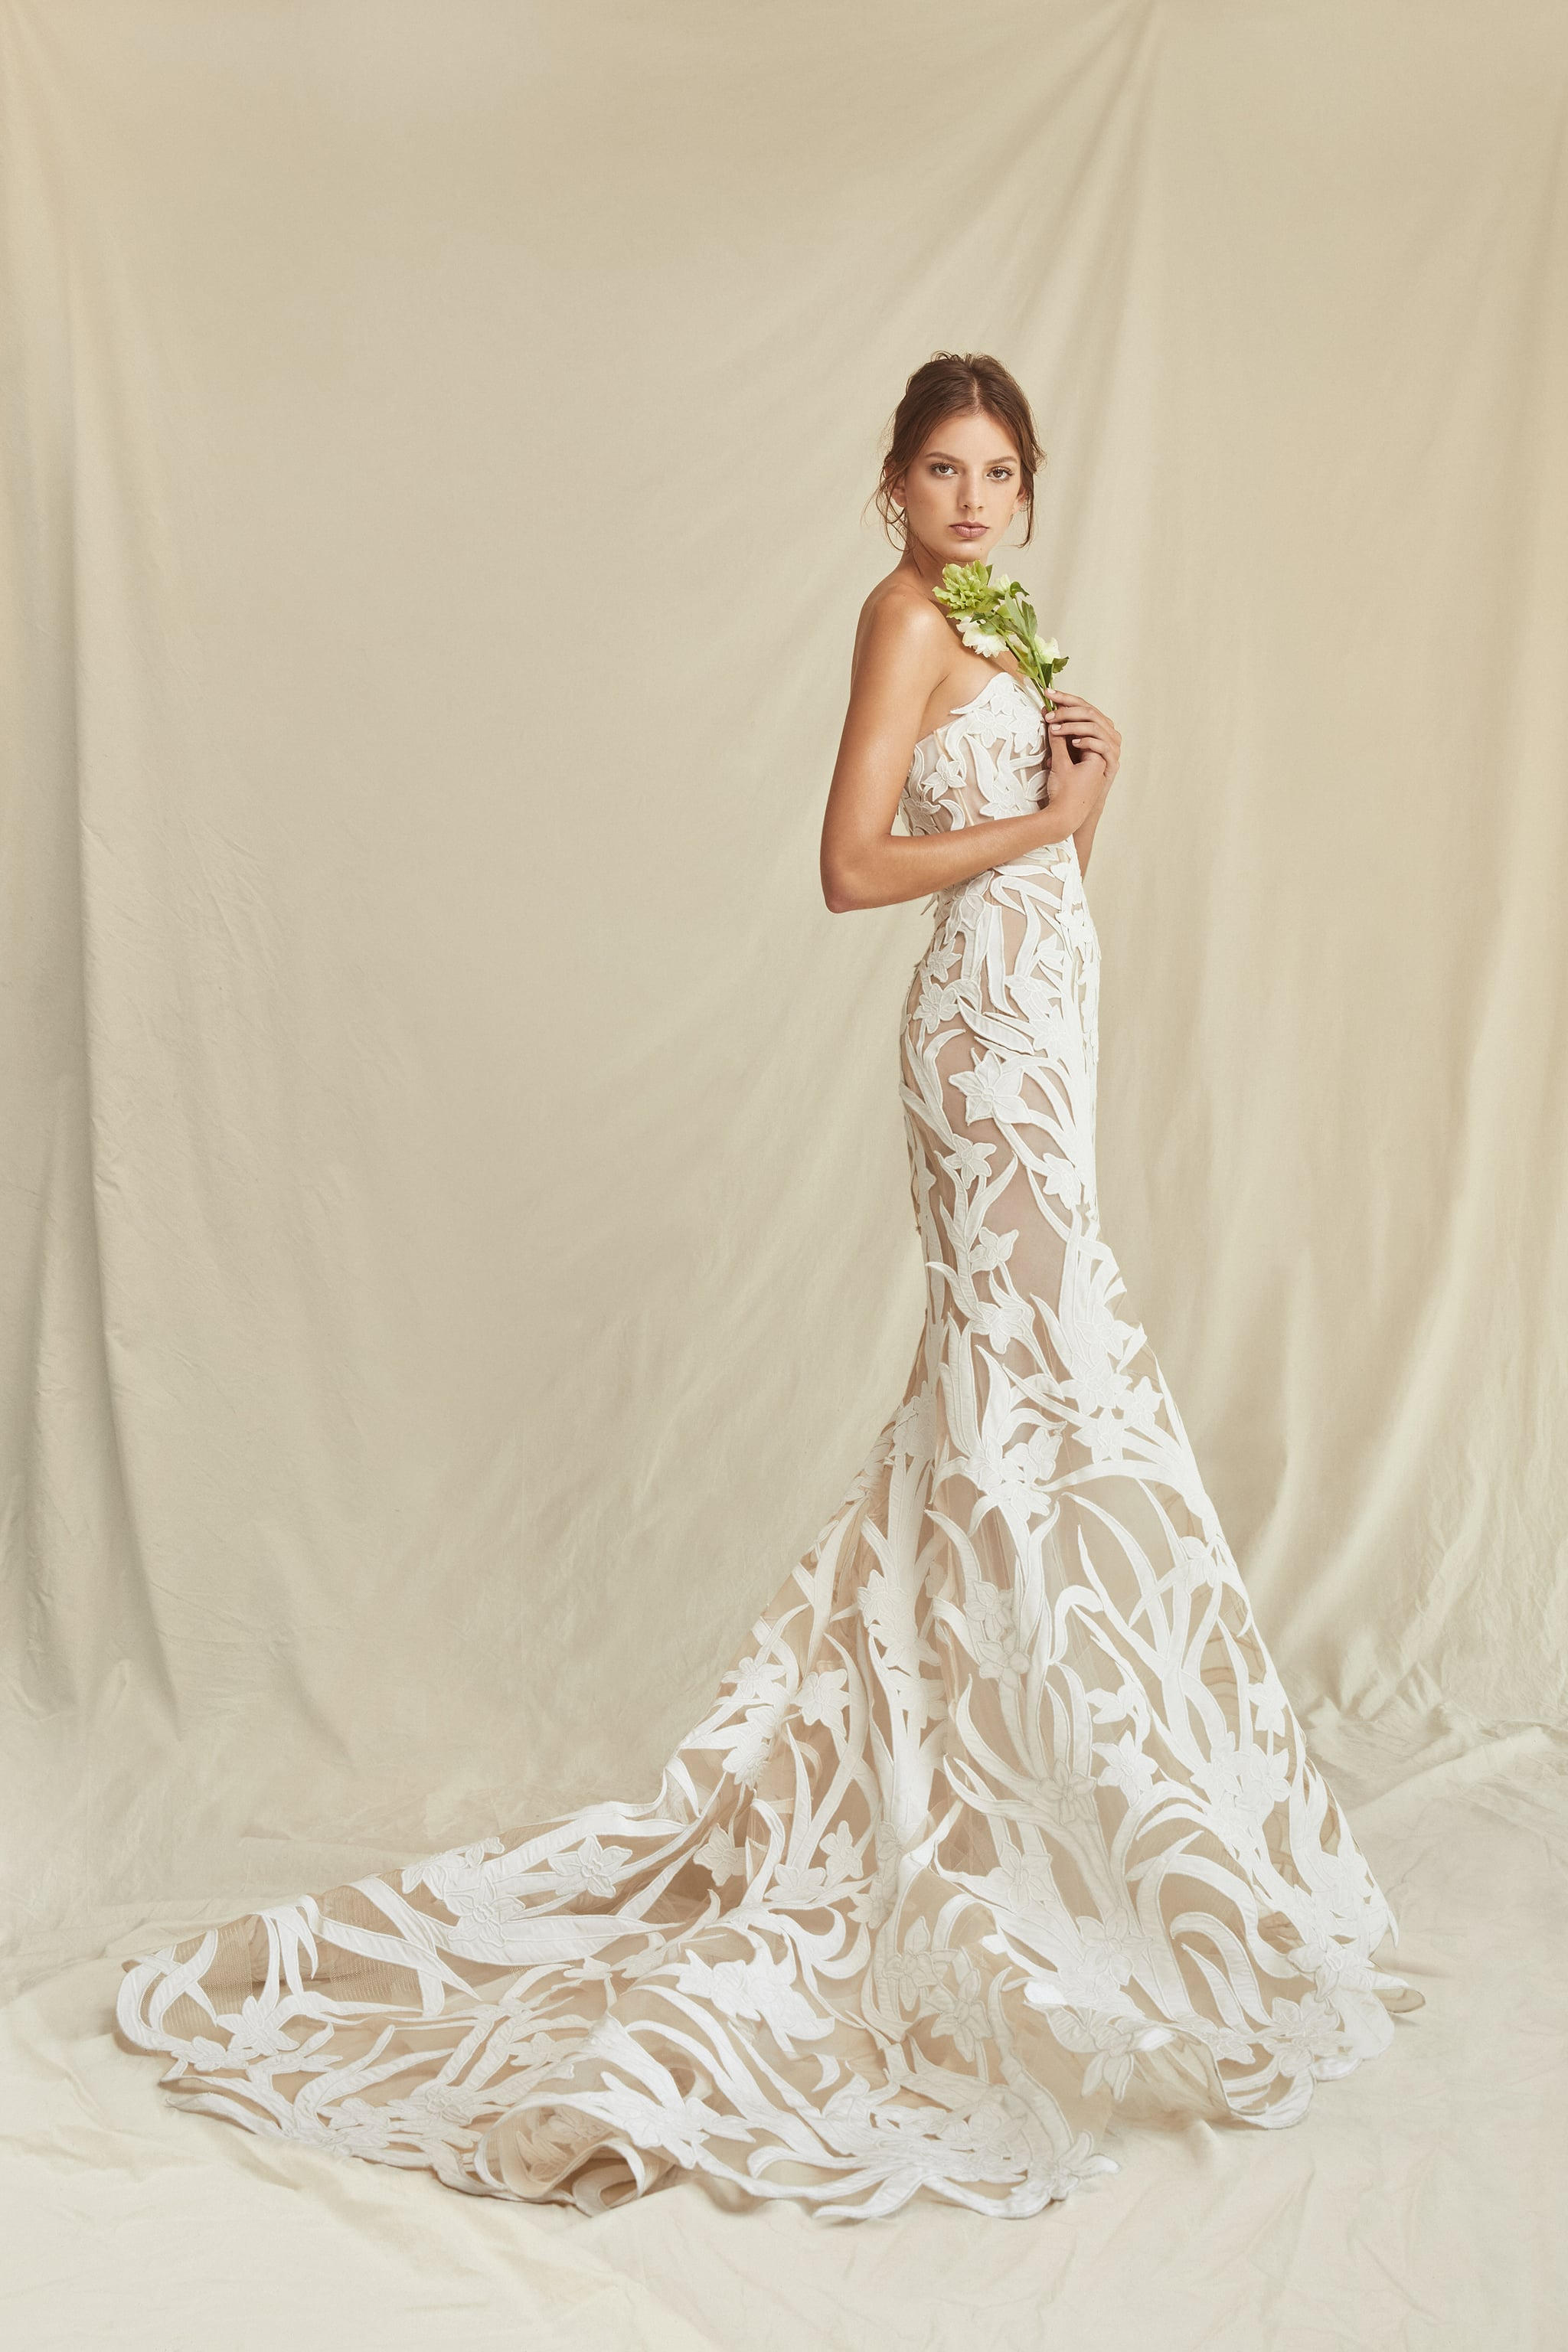 The 20 Biggest Wedding Dress Trends For 20 Brides to Know ...